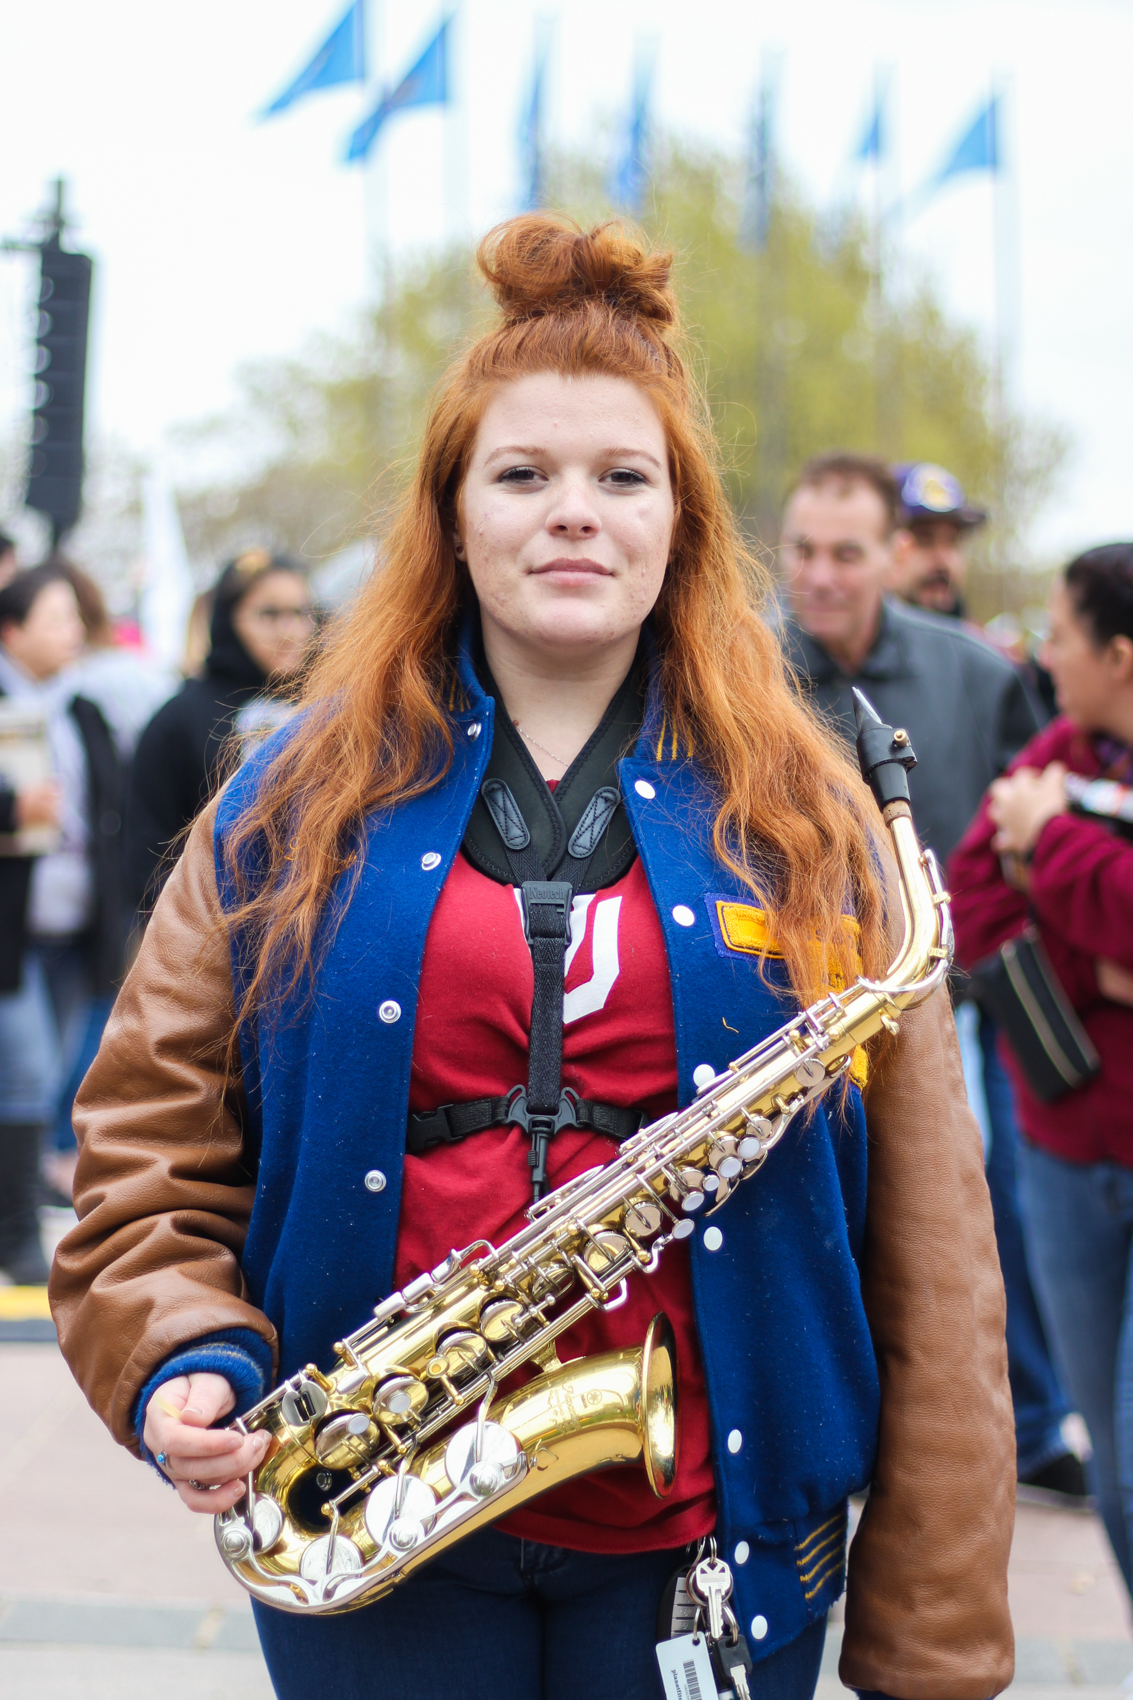 """I play saxophone in my high school, and the reason I care is that in the future, I'd like to join the music program and become a teacher. If you want to change something, you've got to do it yourself."" —Emma Mankin, Student at Long Grove High School, played in The Walkout Band"